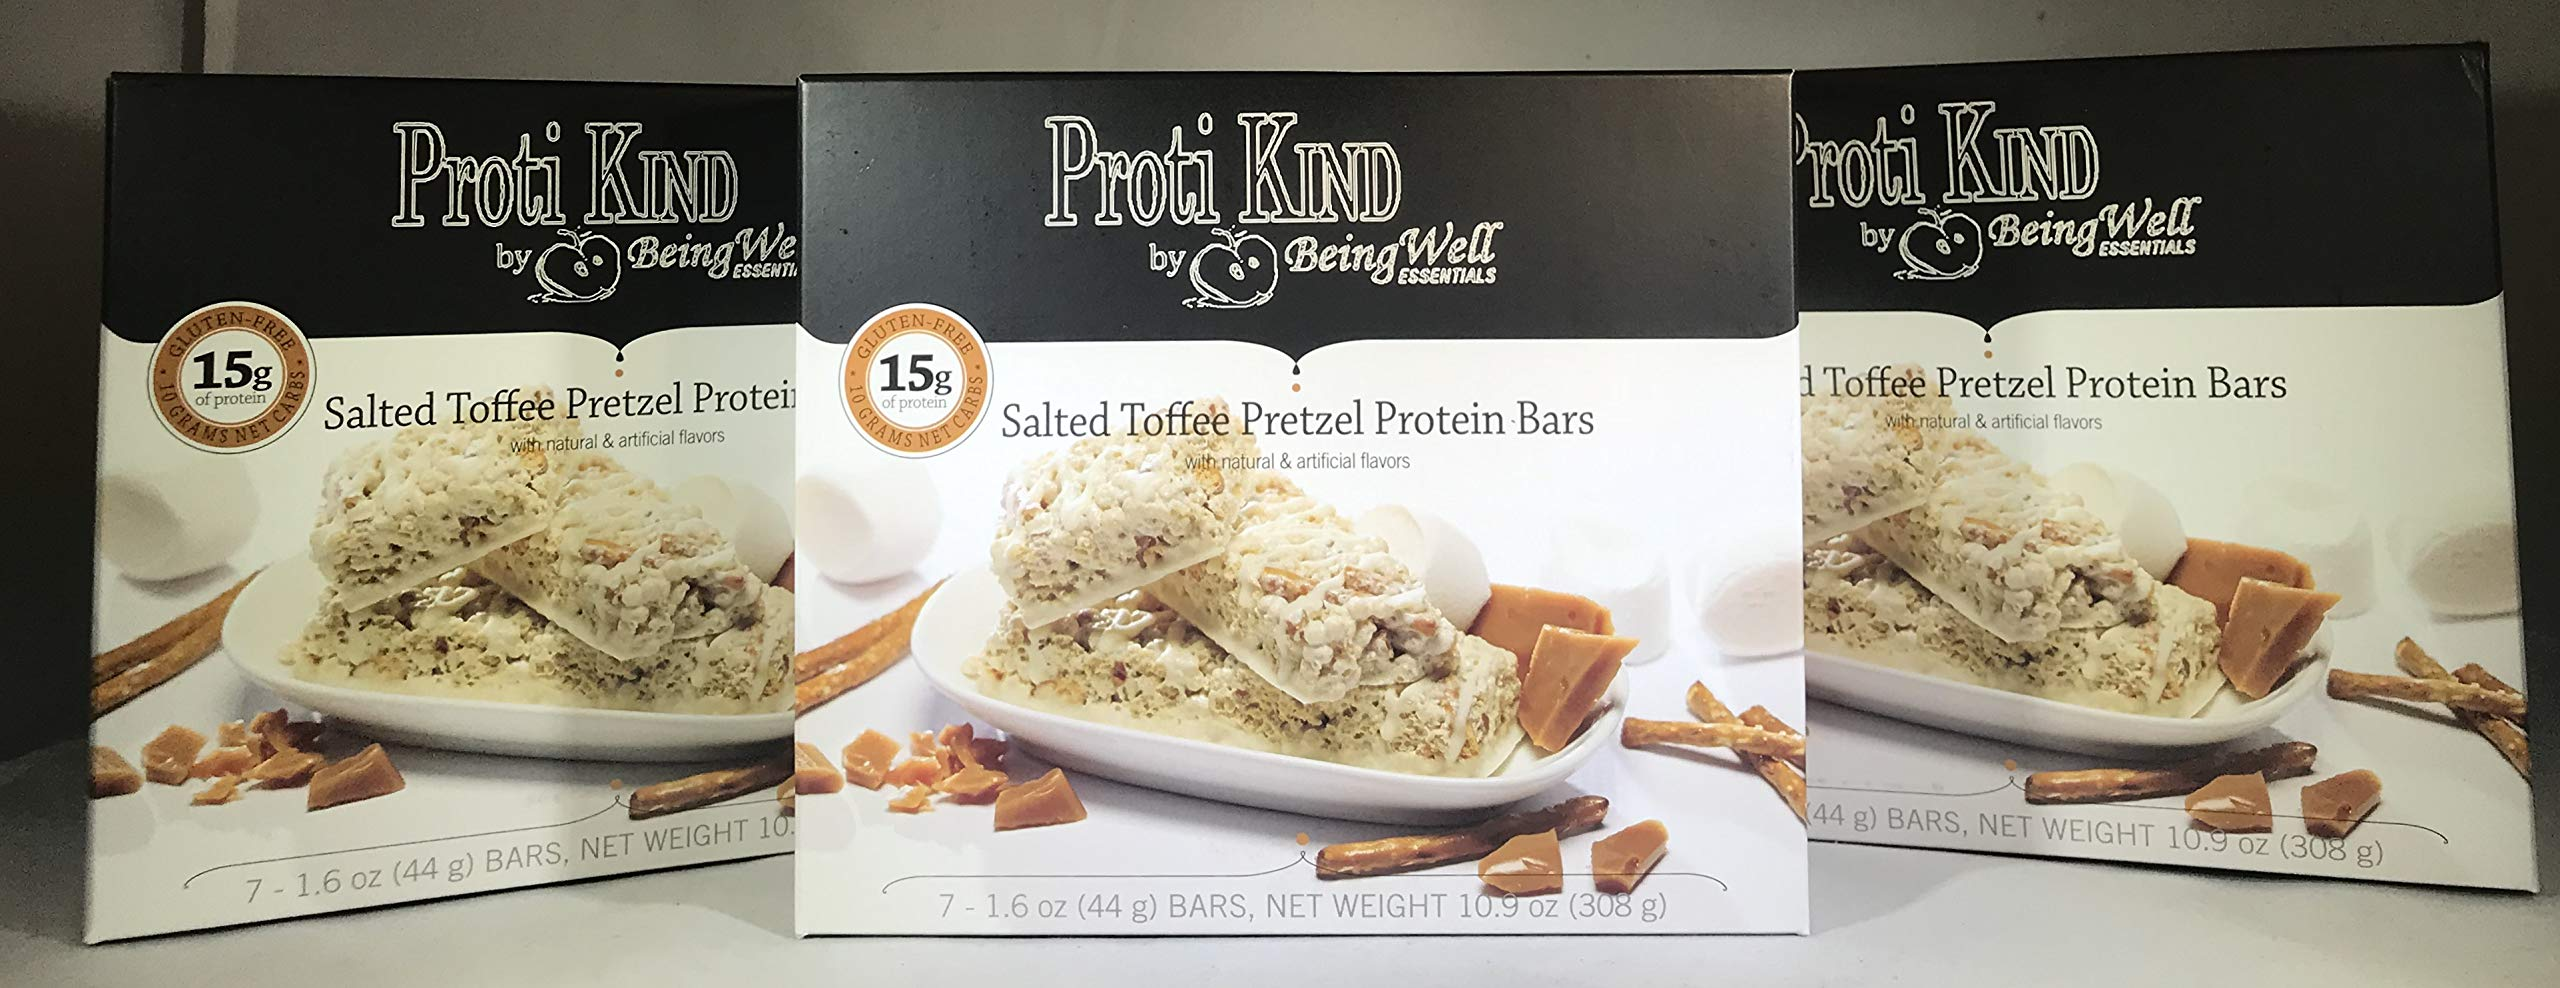 Proti Kind Salted Very Low Carb Toffee Pretzel Protein Bars - THREE PACK - 21 bars